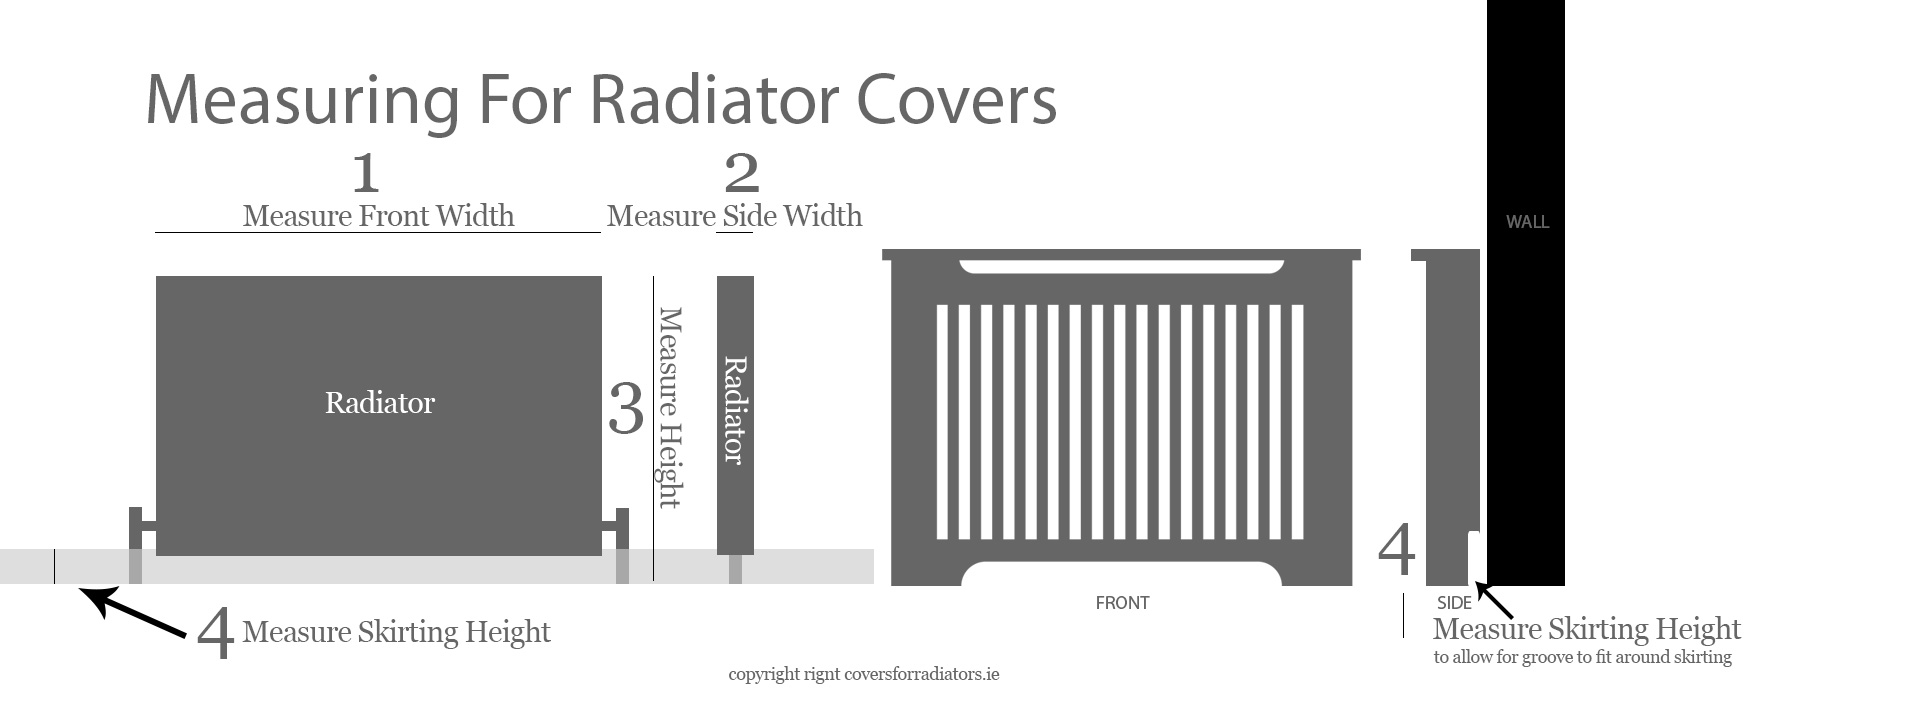 measuring-for-radiator-covers